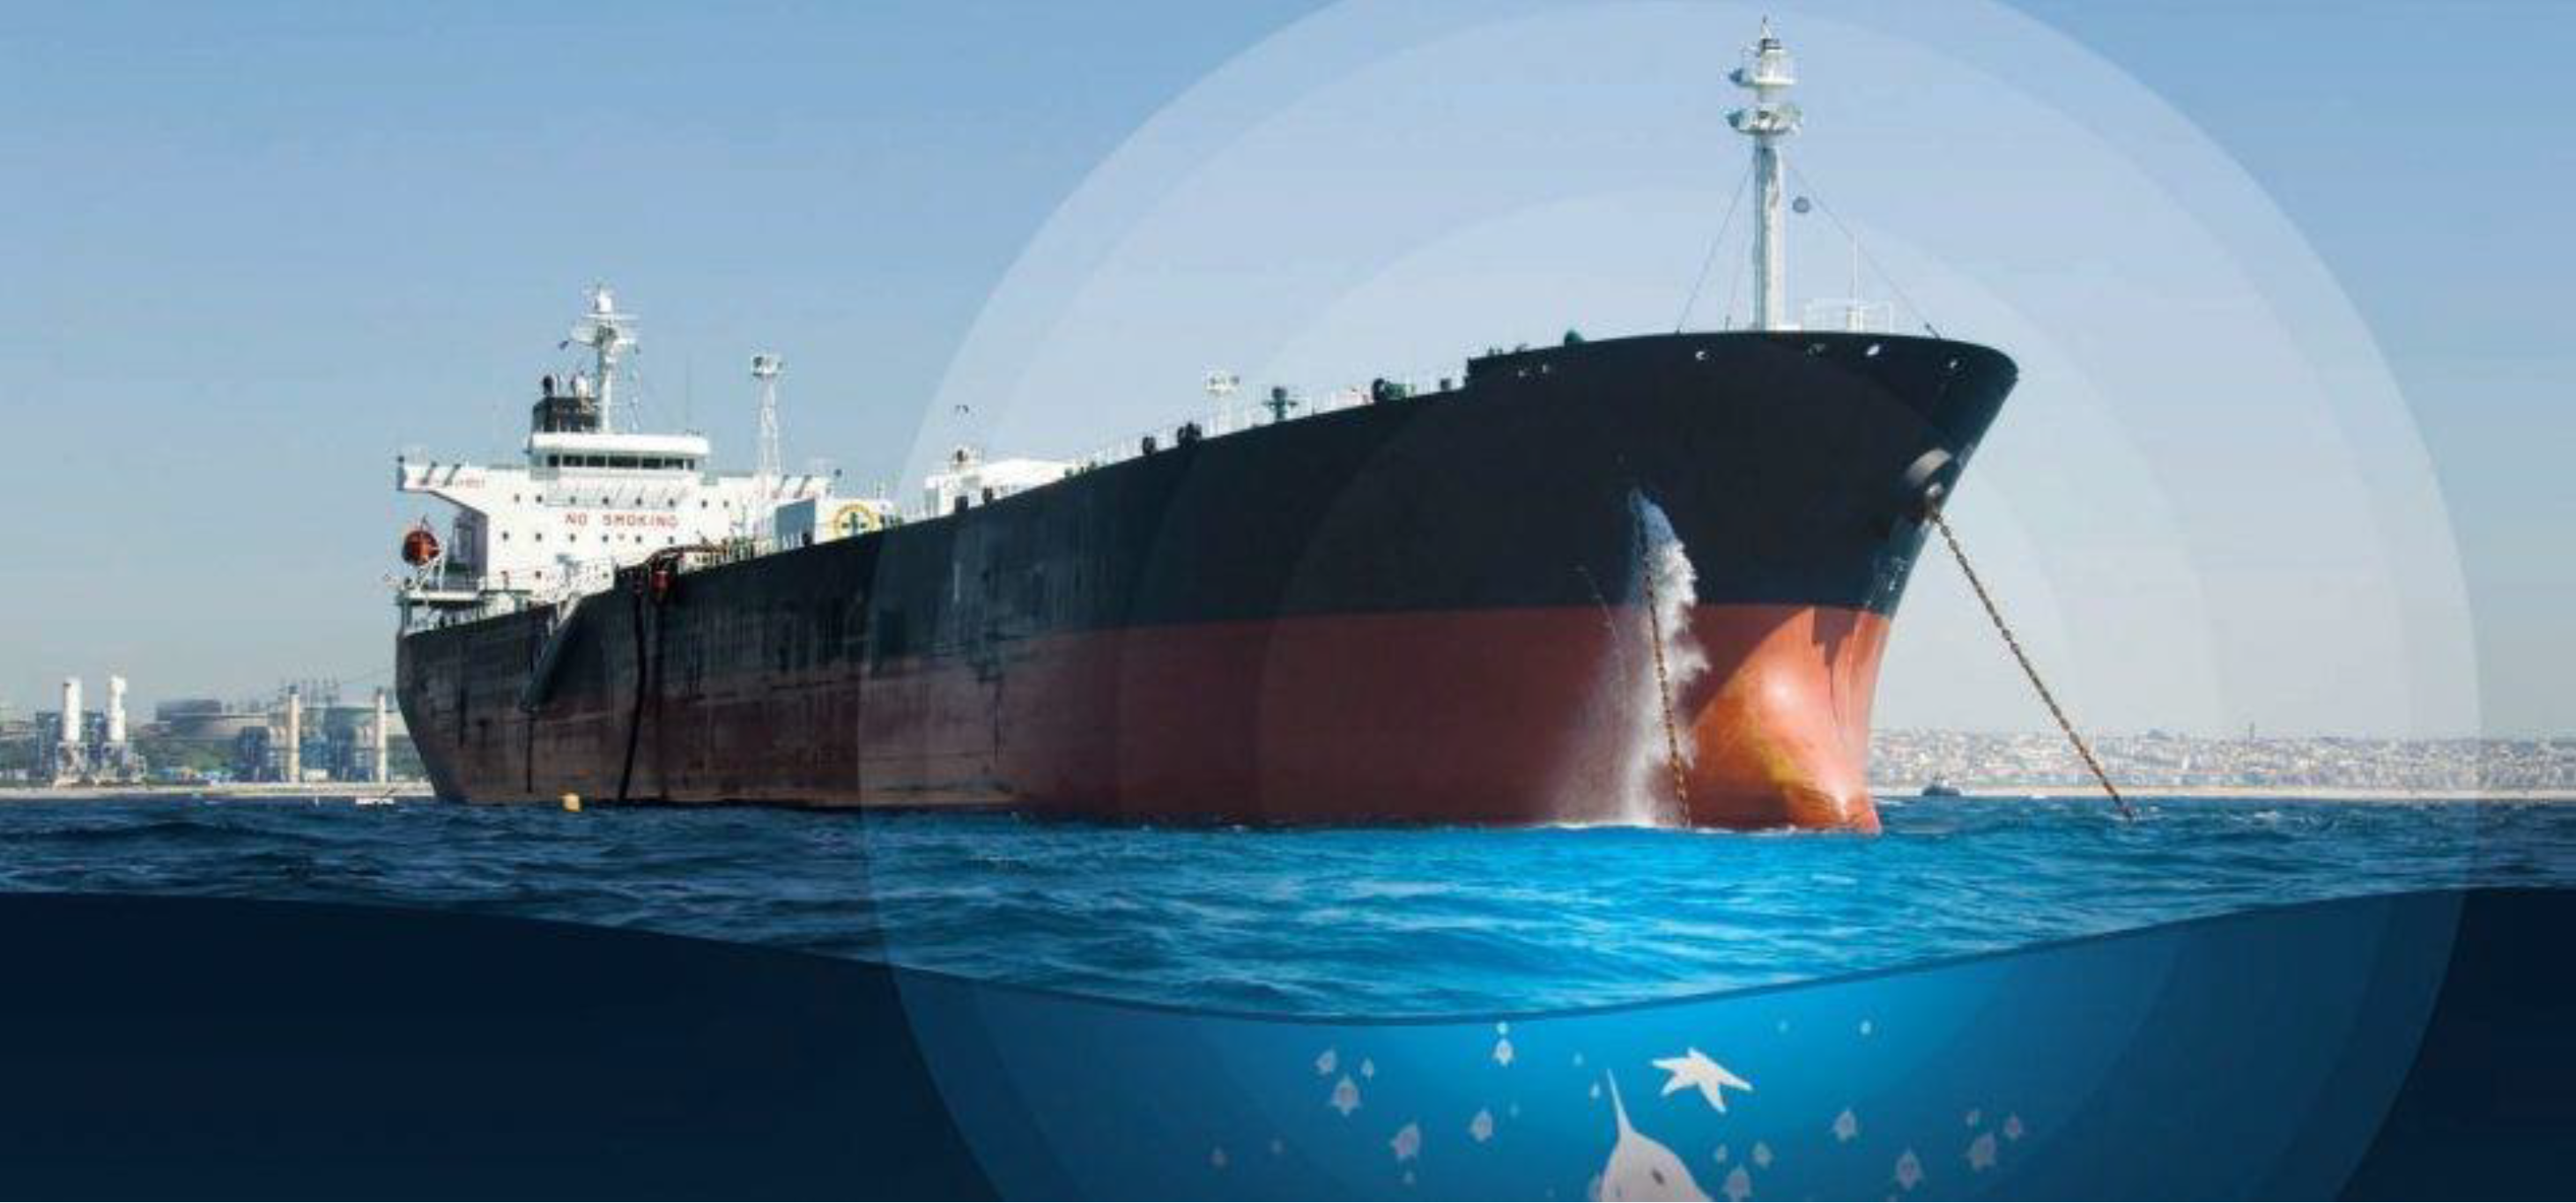 Maritime course for engineers